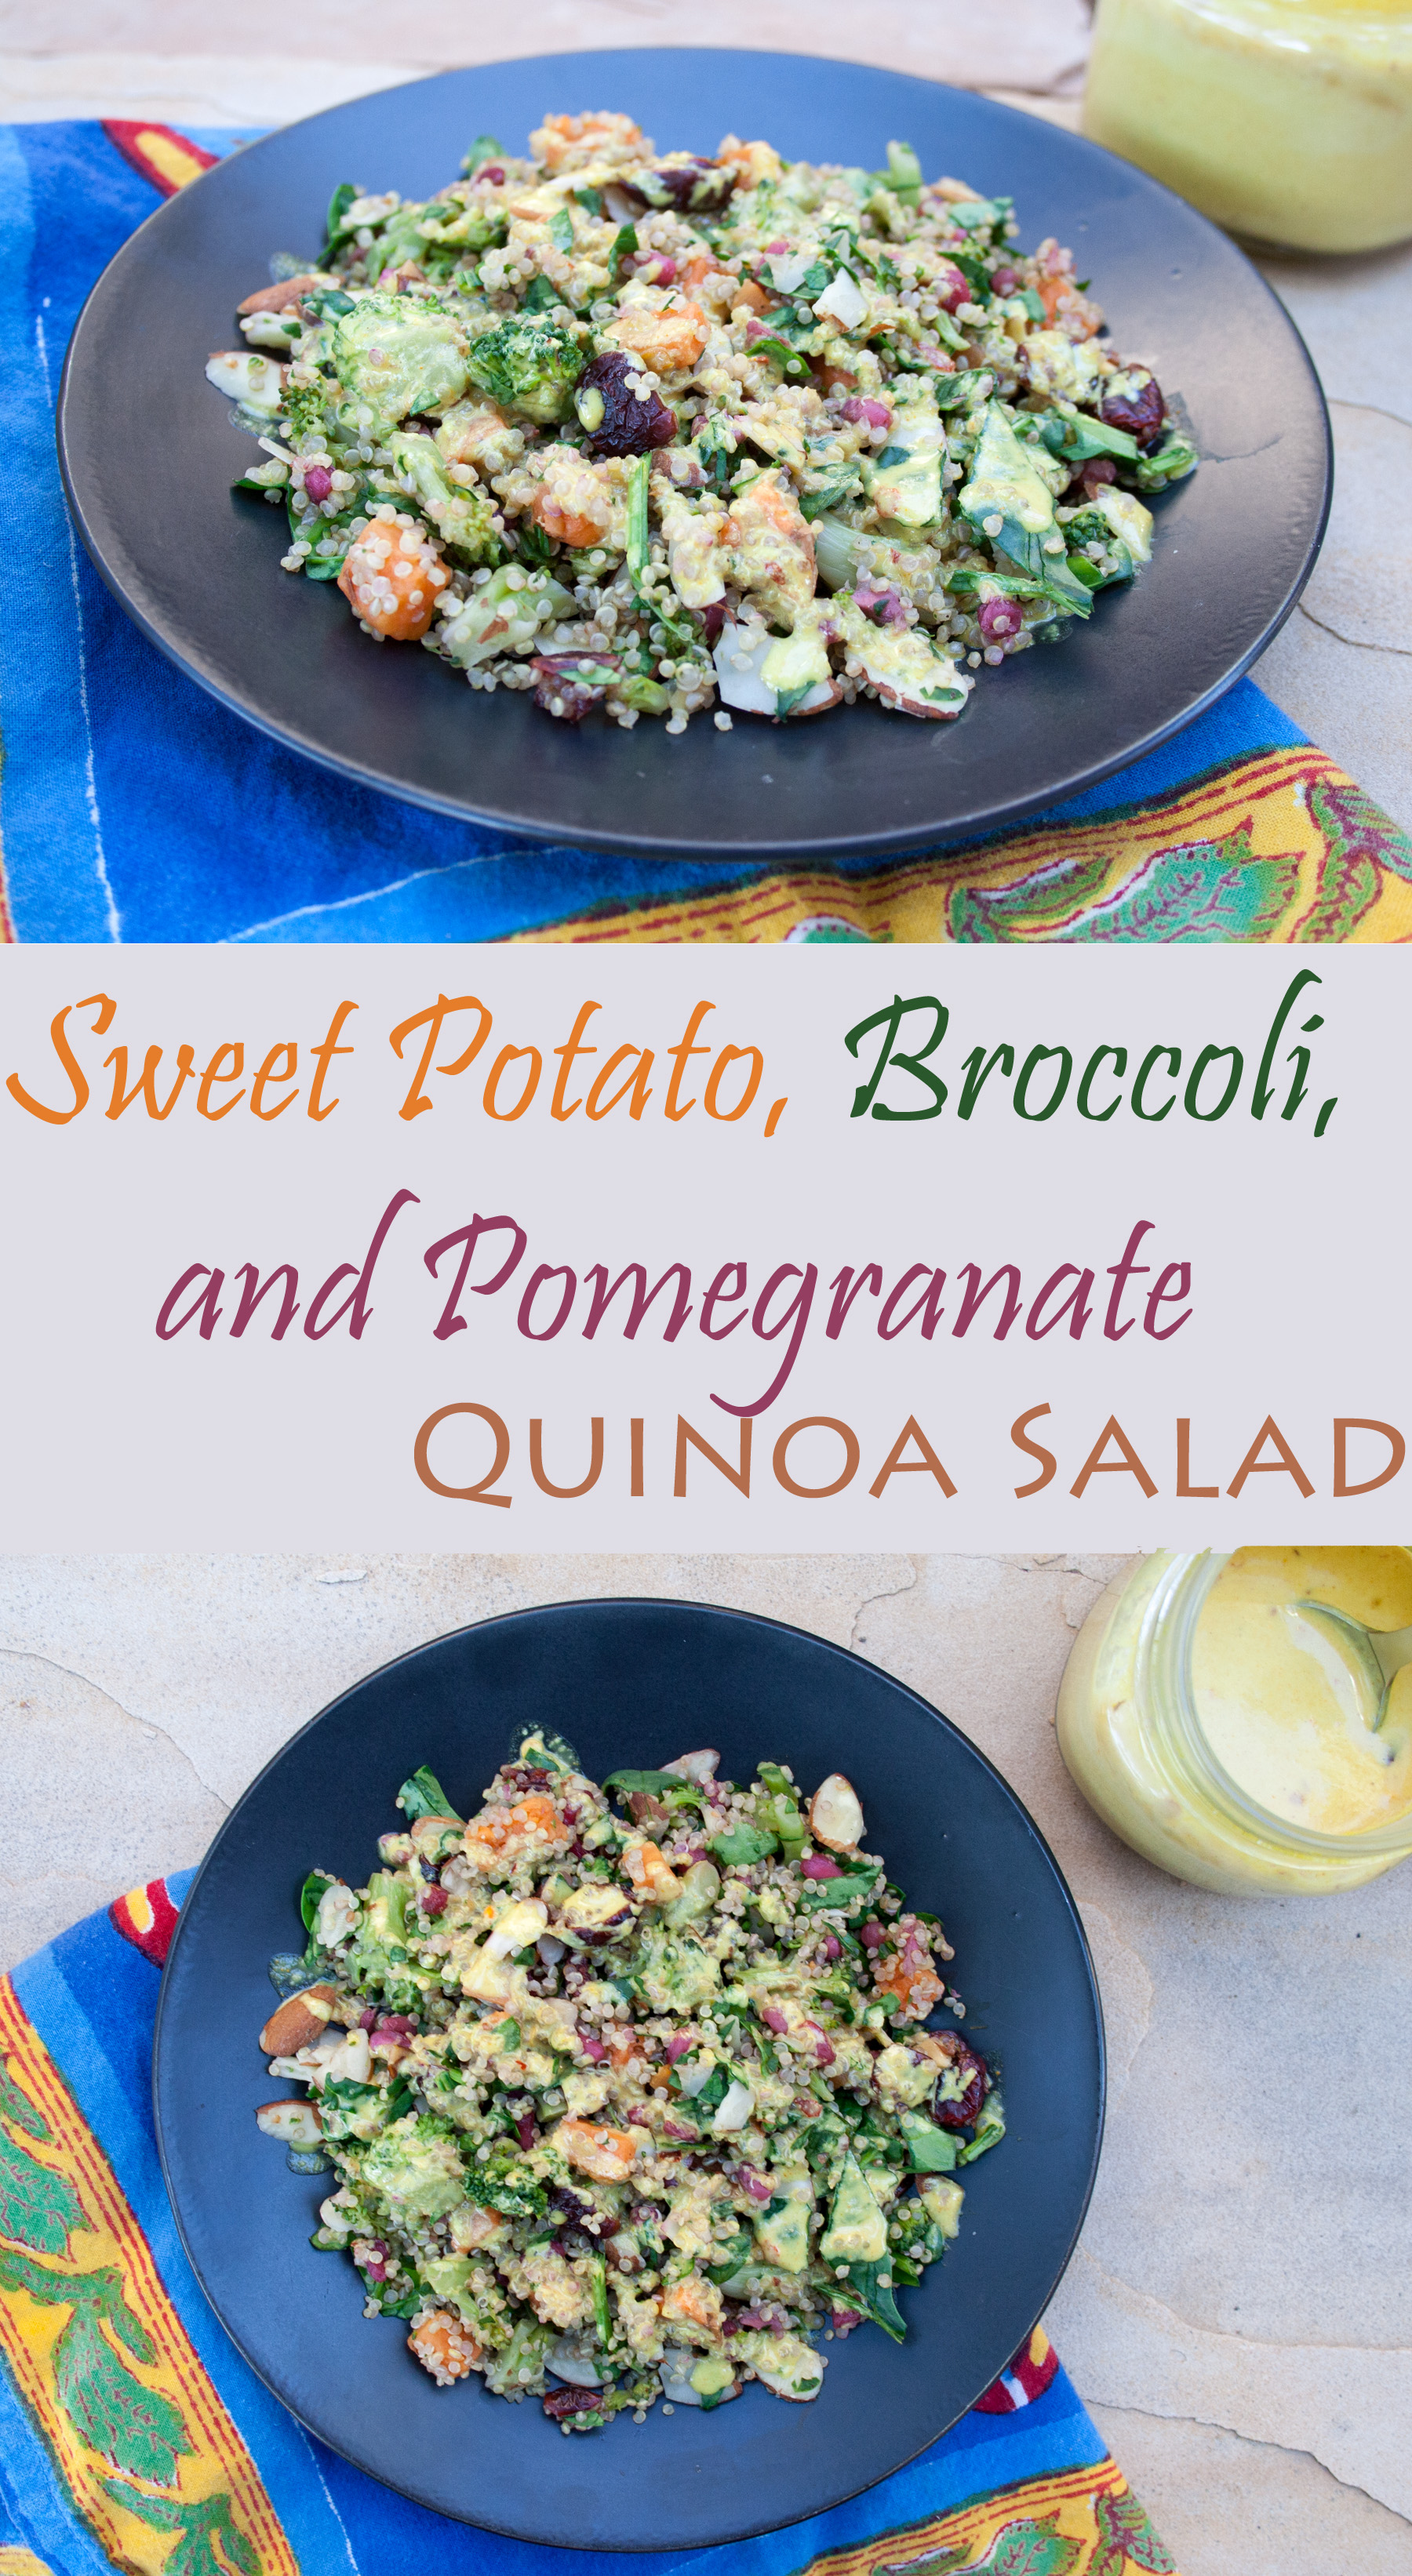 Sweet Potato, Broccoli, and Pomegranate Quinoa Salad collage photo with text.